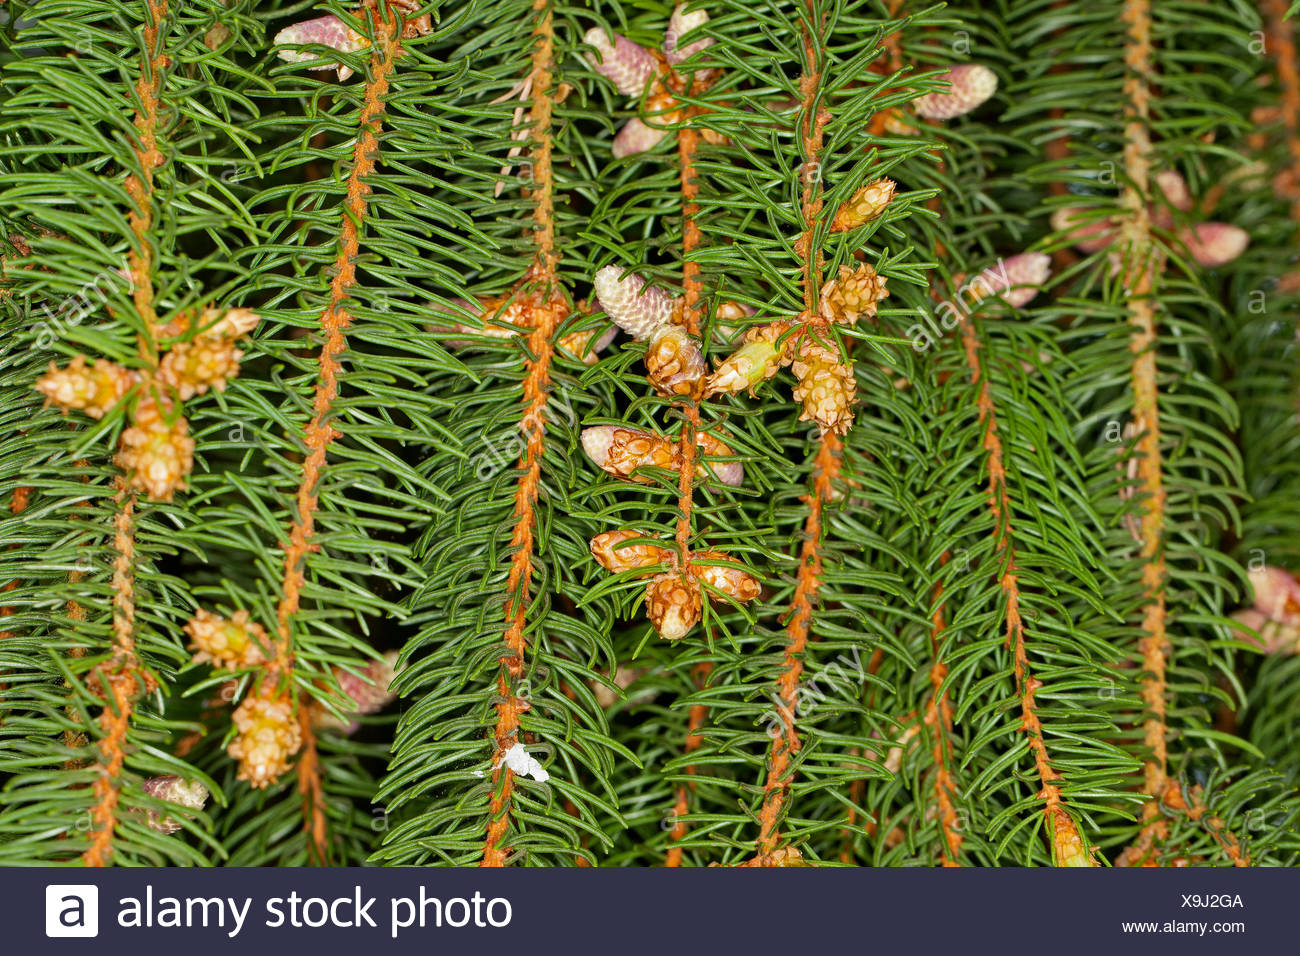 Norway spruce (Picea abies), branch with male flowers, Germany Stock Photo